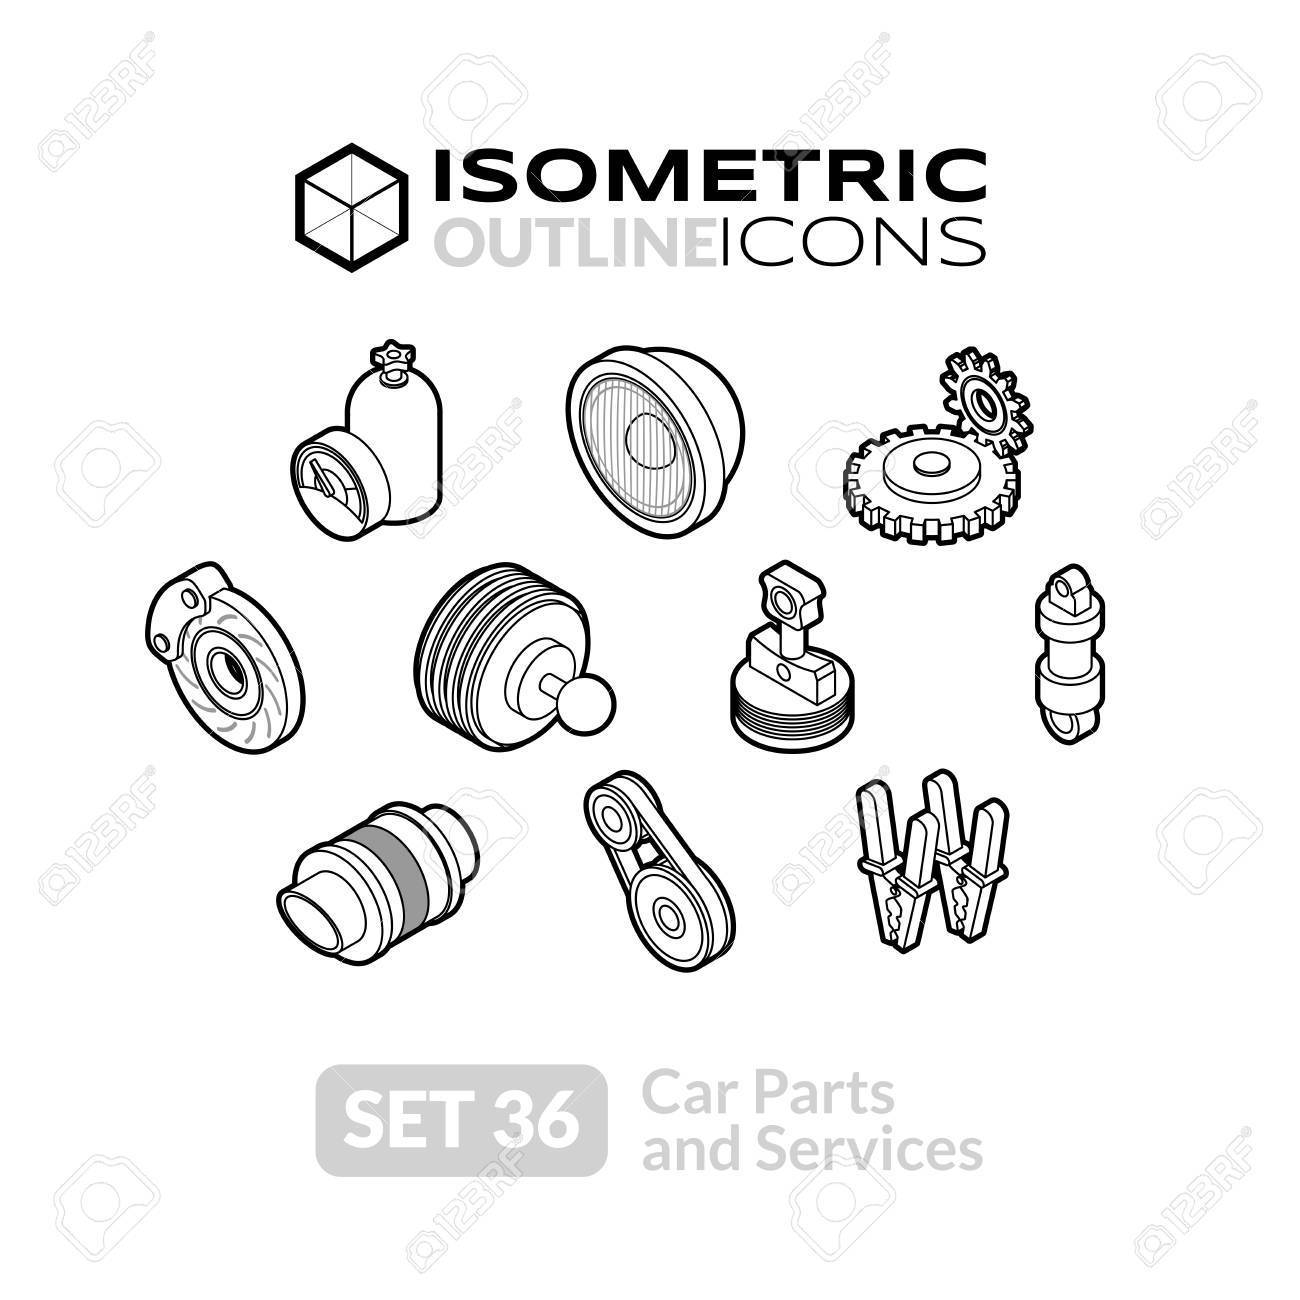 Isometric Outline T Icons, 3D Pictograms Vector Set 36 - Car ...